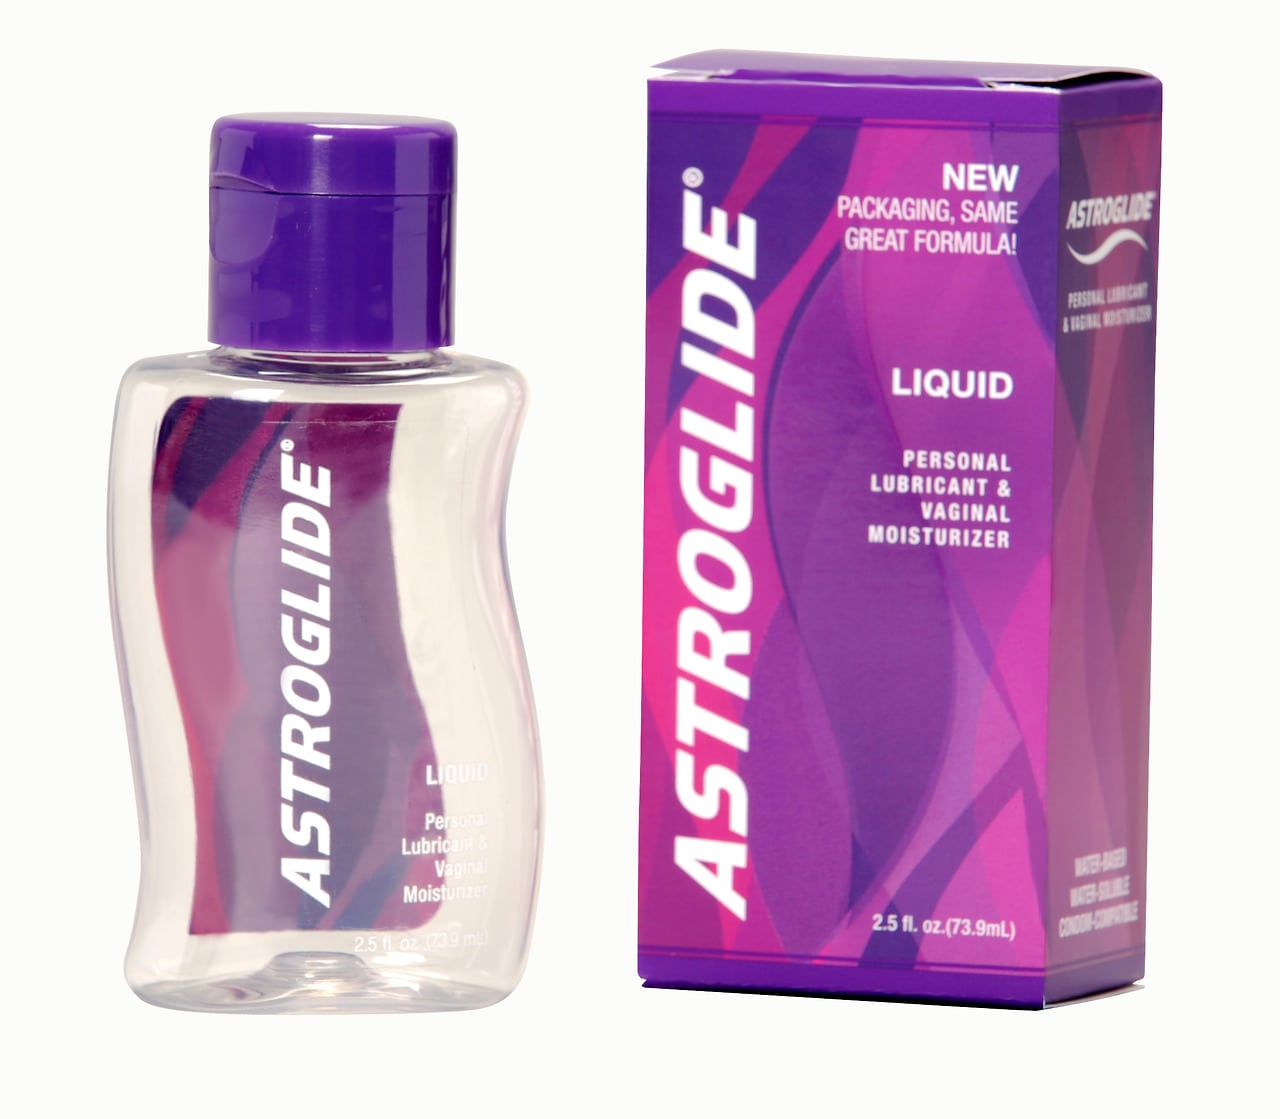 Astroglide Liquid Review